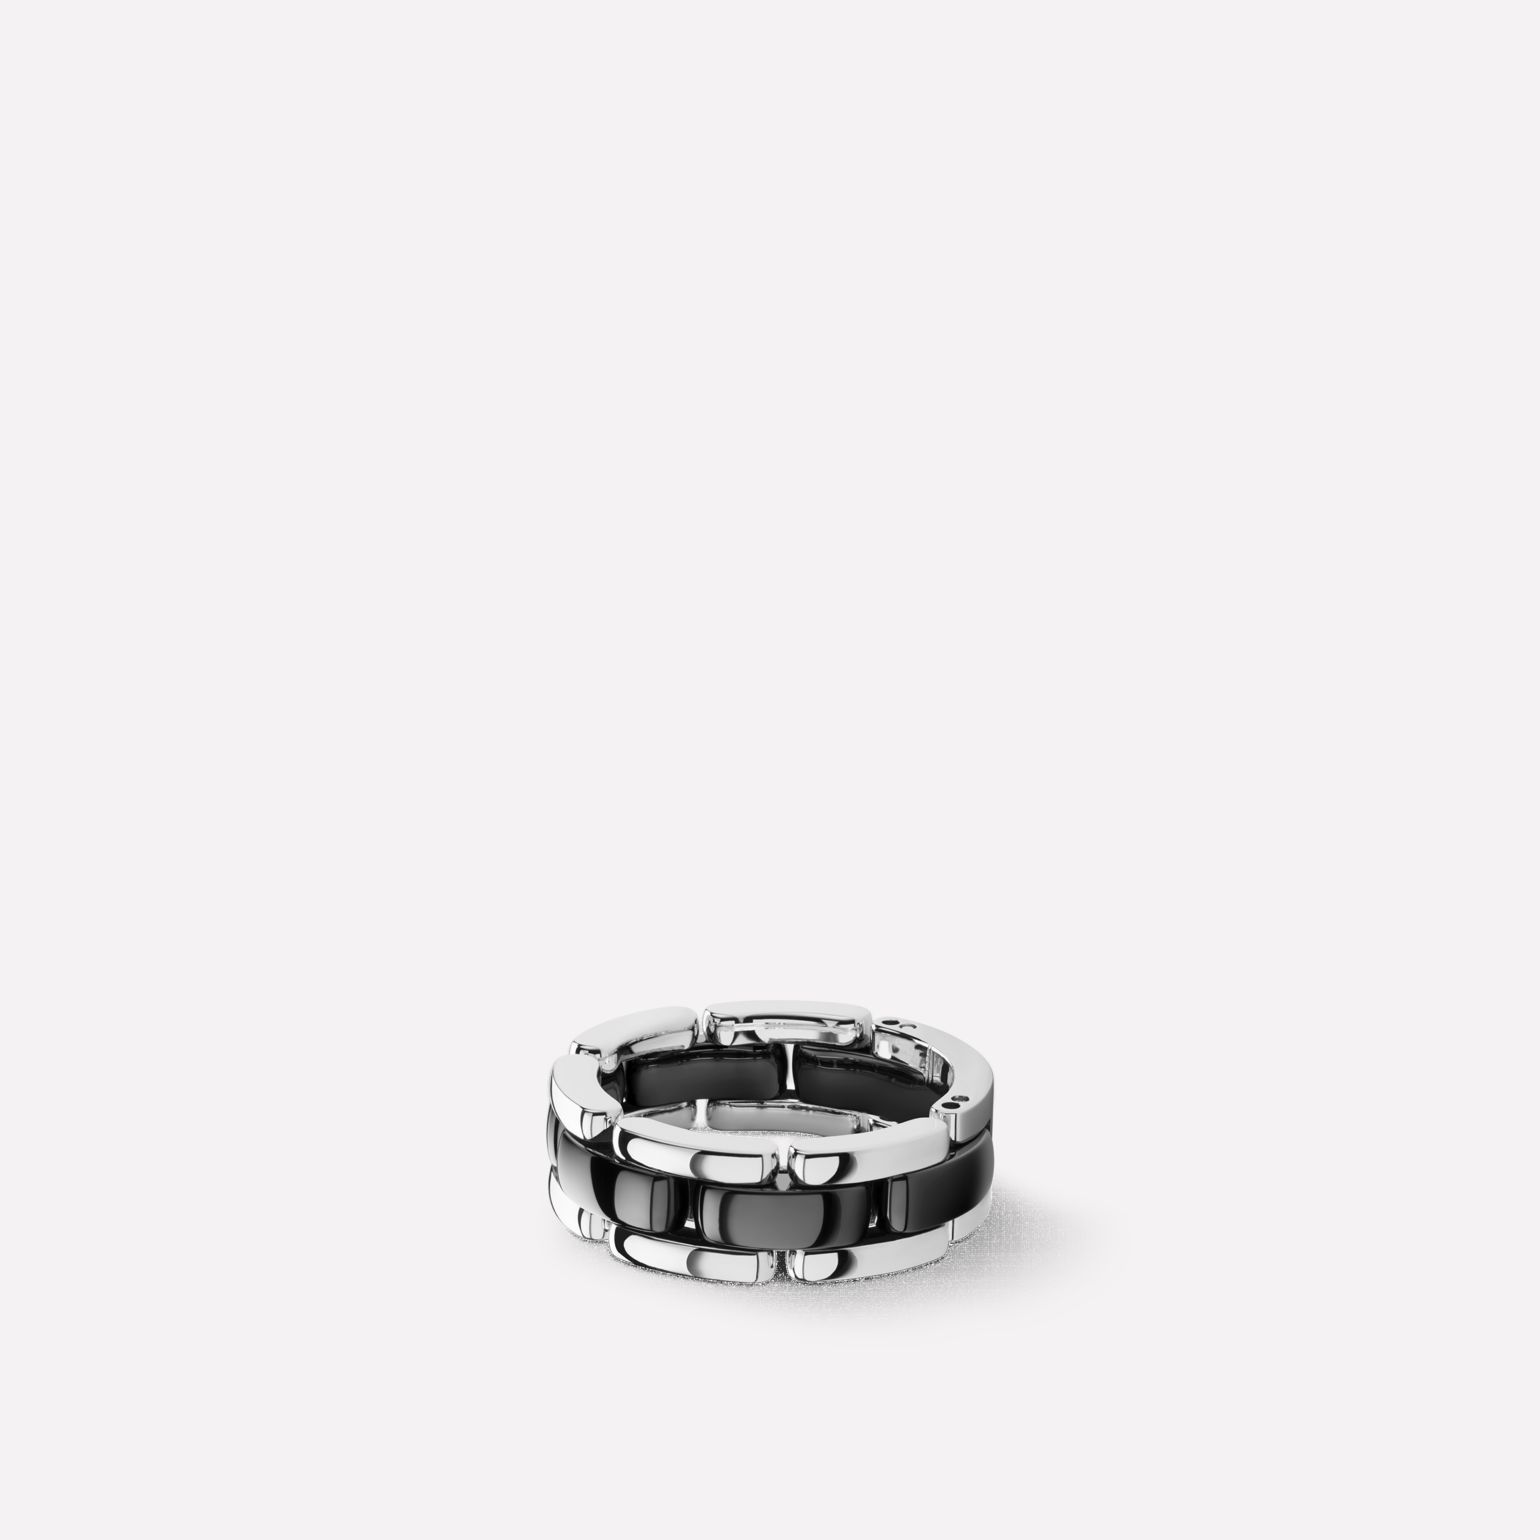 Ultra ring Ultra ring, medium version, in black ceramic and 18K white gold